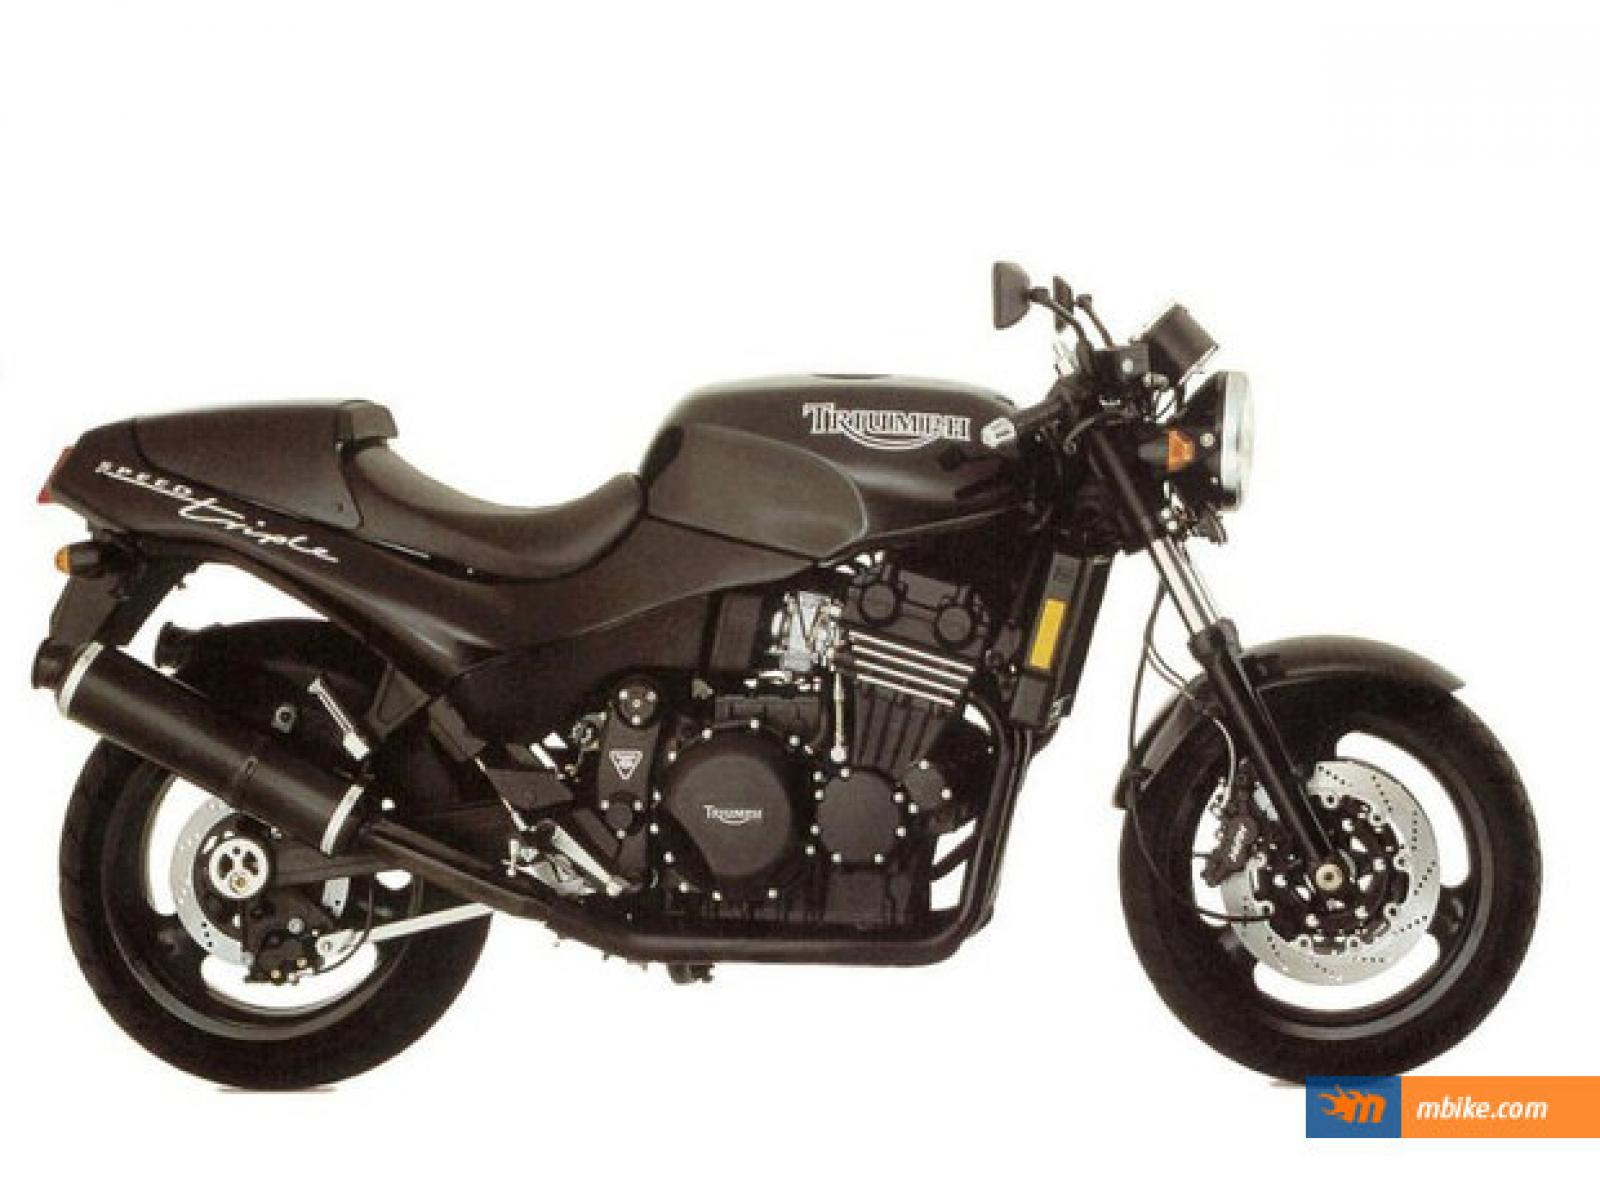 Triumph Speed Triple 900 1996 images #159244